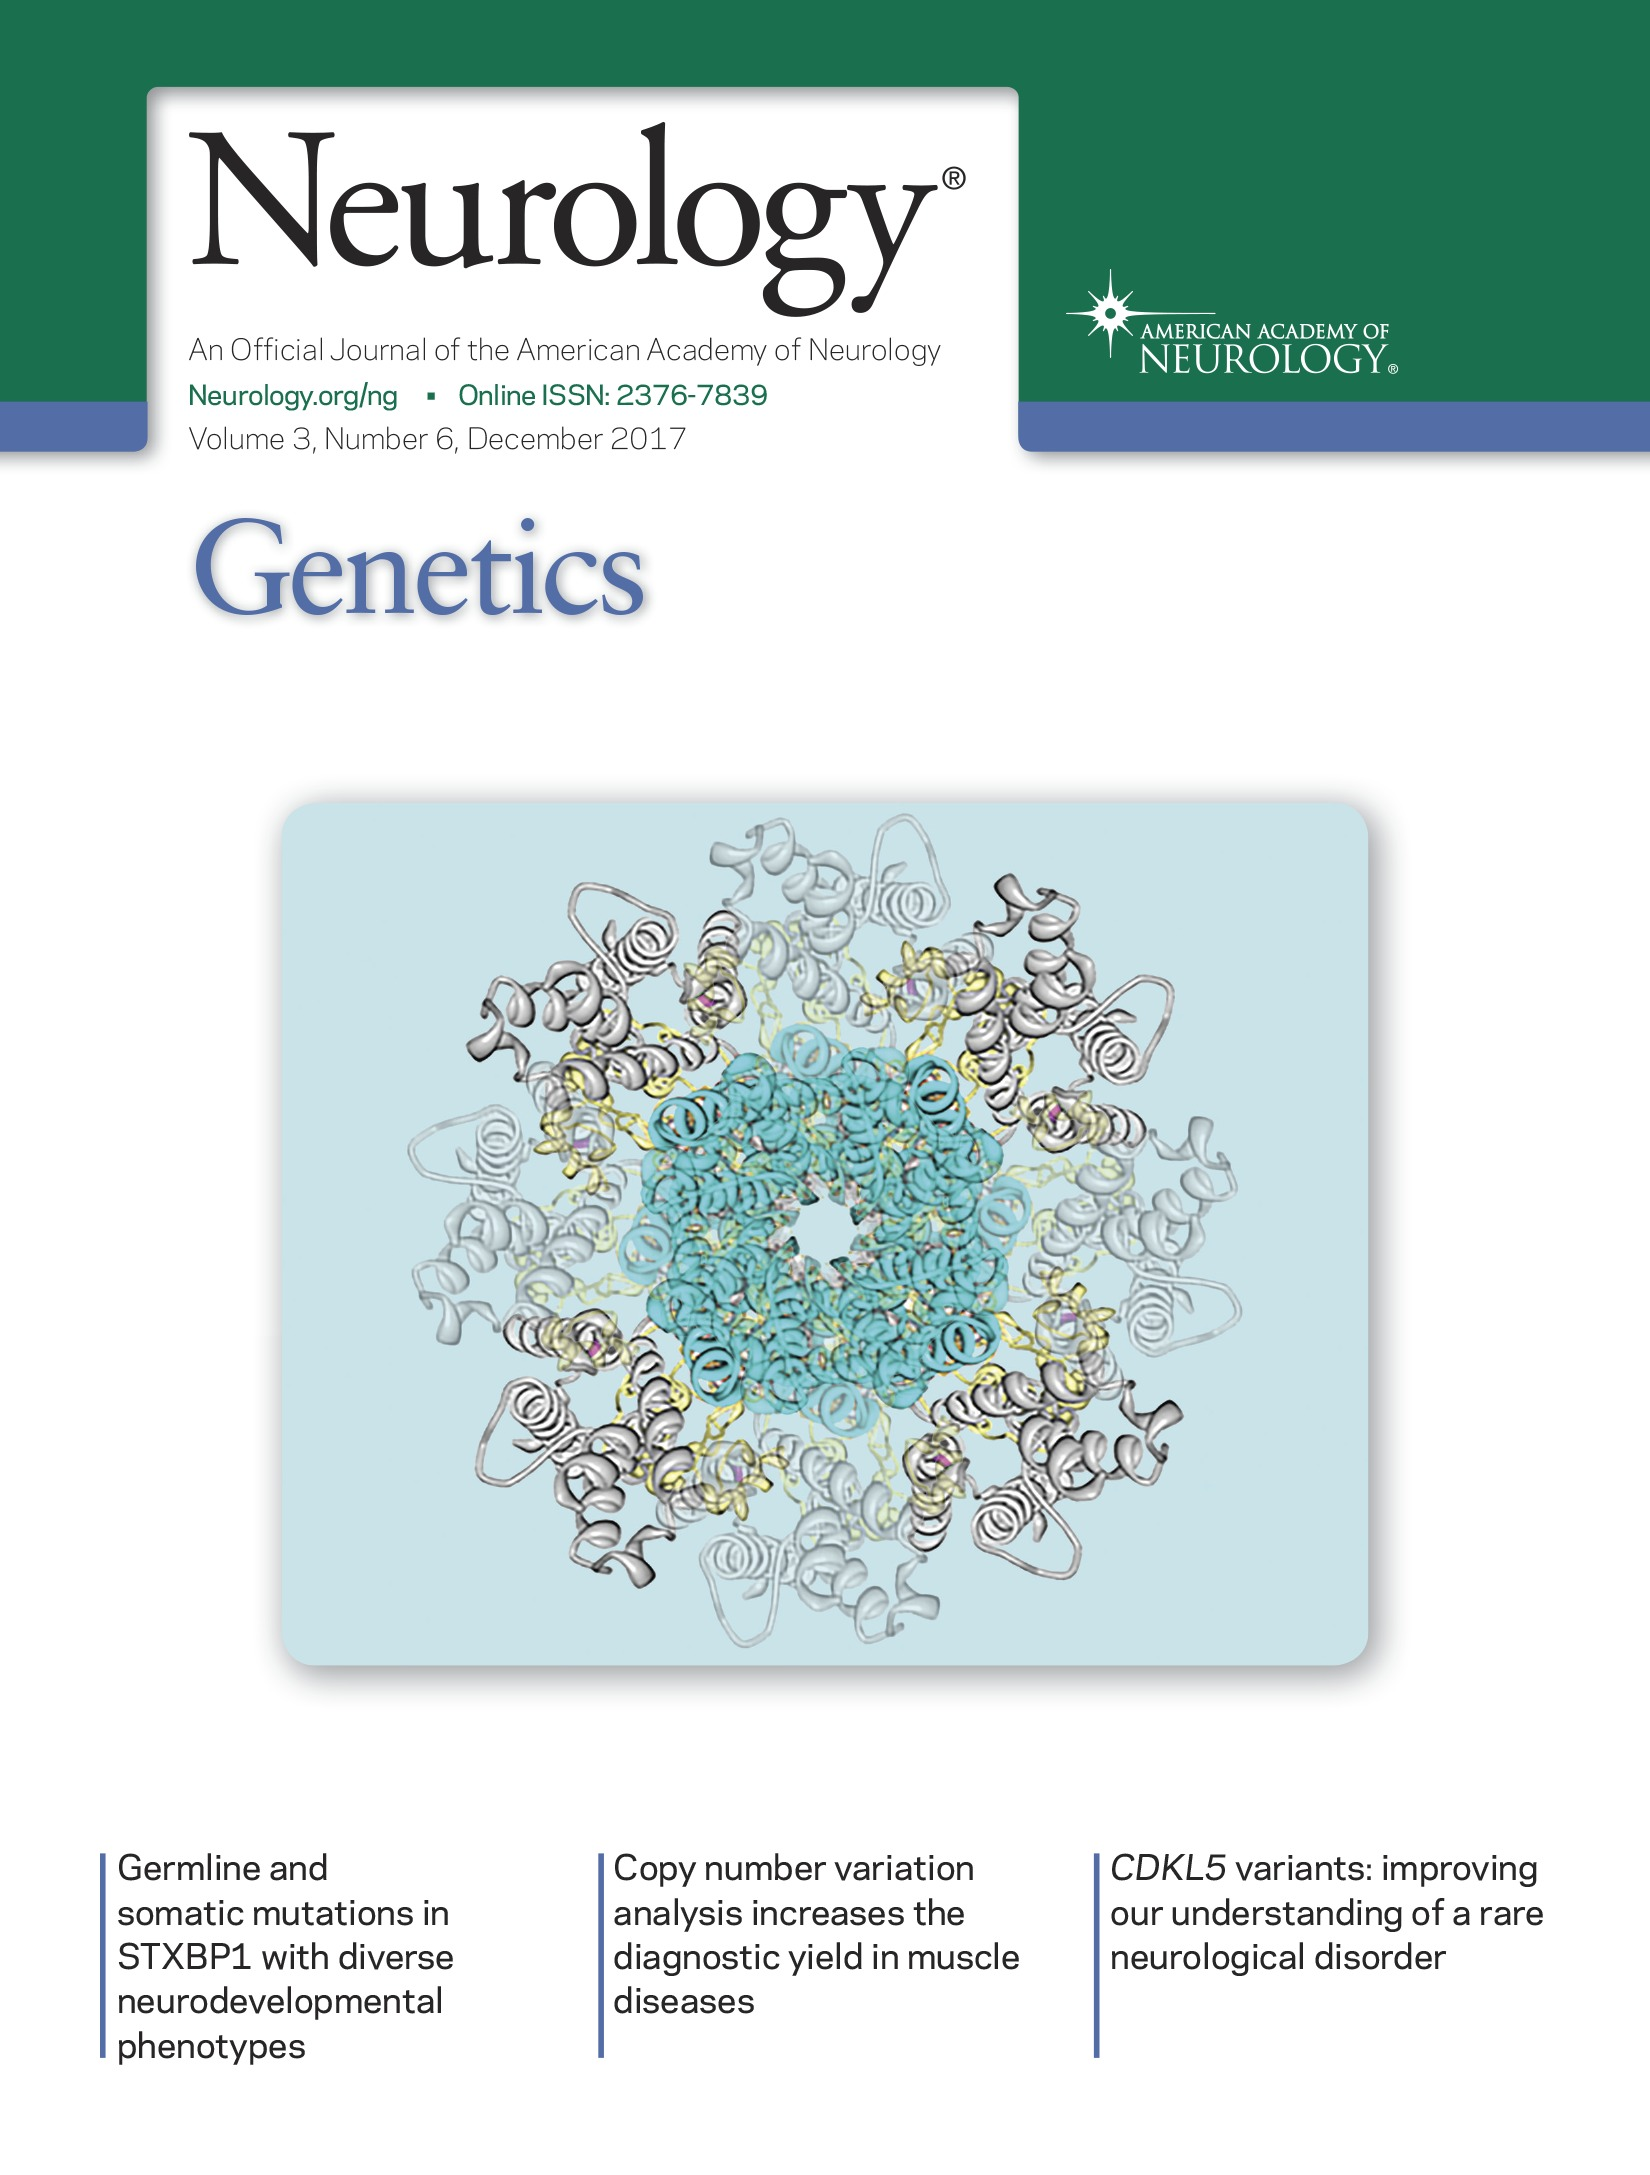 Germline and somatic mutations in STXBP1 with diverse